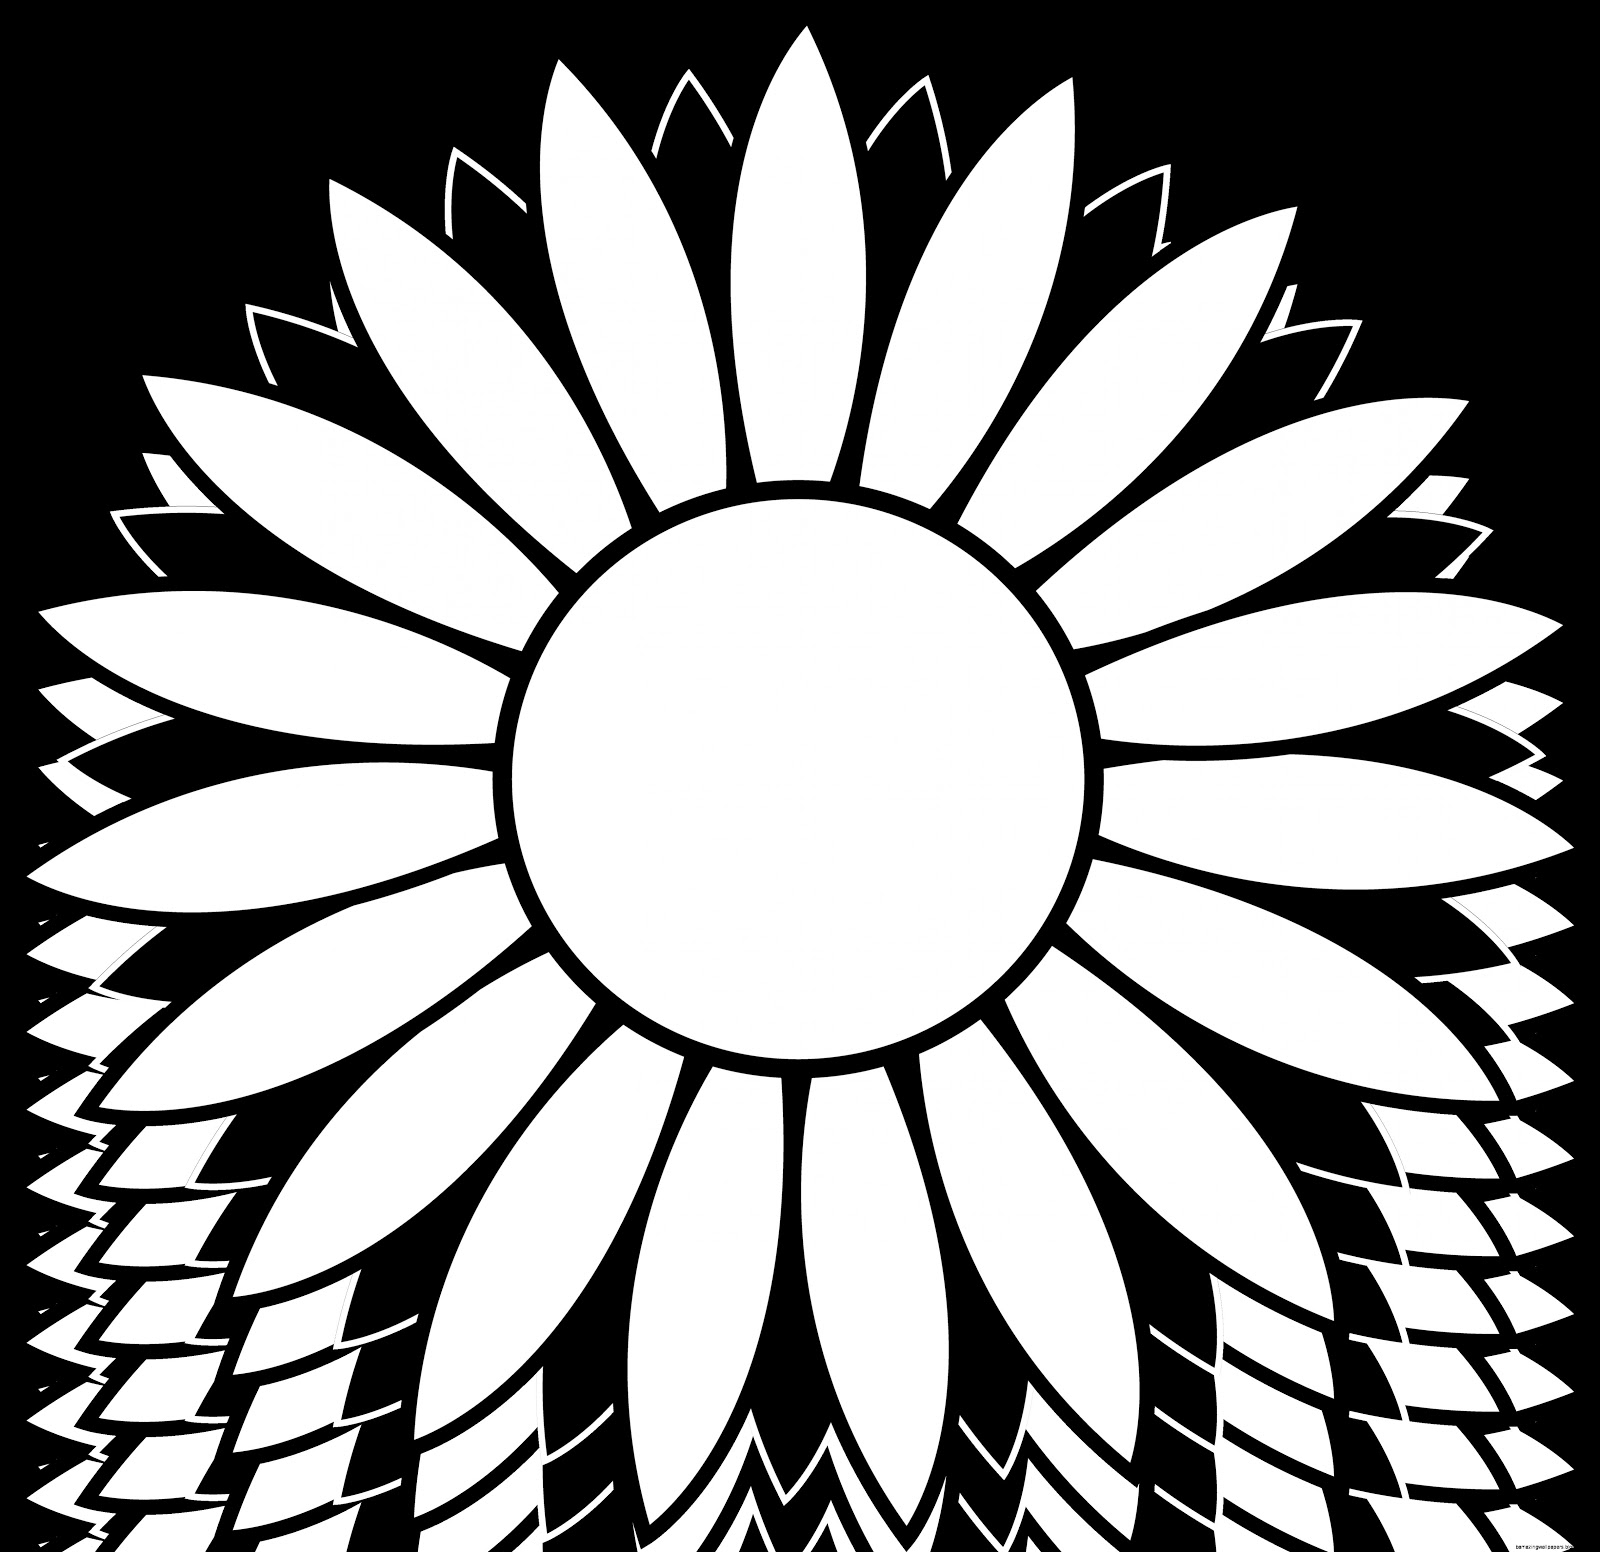 Sunflowers Clip Art Black And White | Amazing Wallpapers for Clipart Sunflower Black And White  143gtk